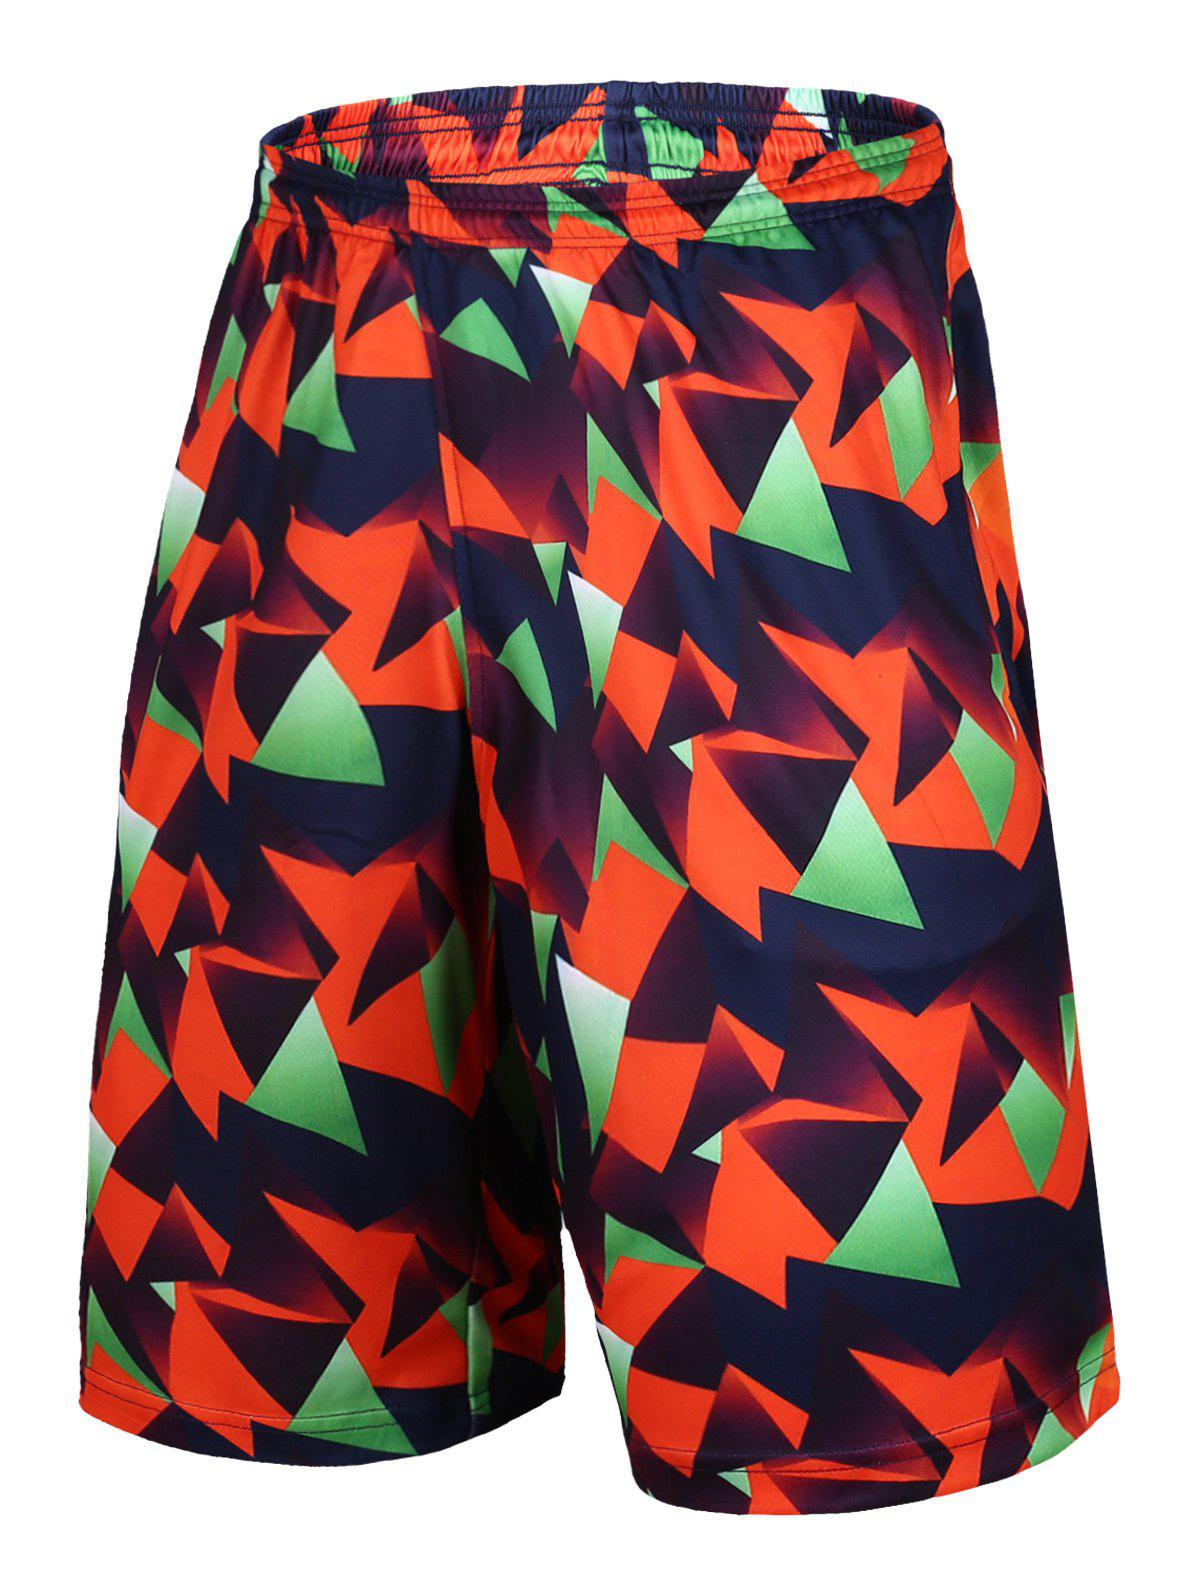 Elastic Waist Geometric Print Color Block Basketball Shorts - COLORMIX M